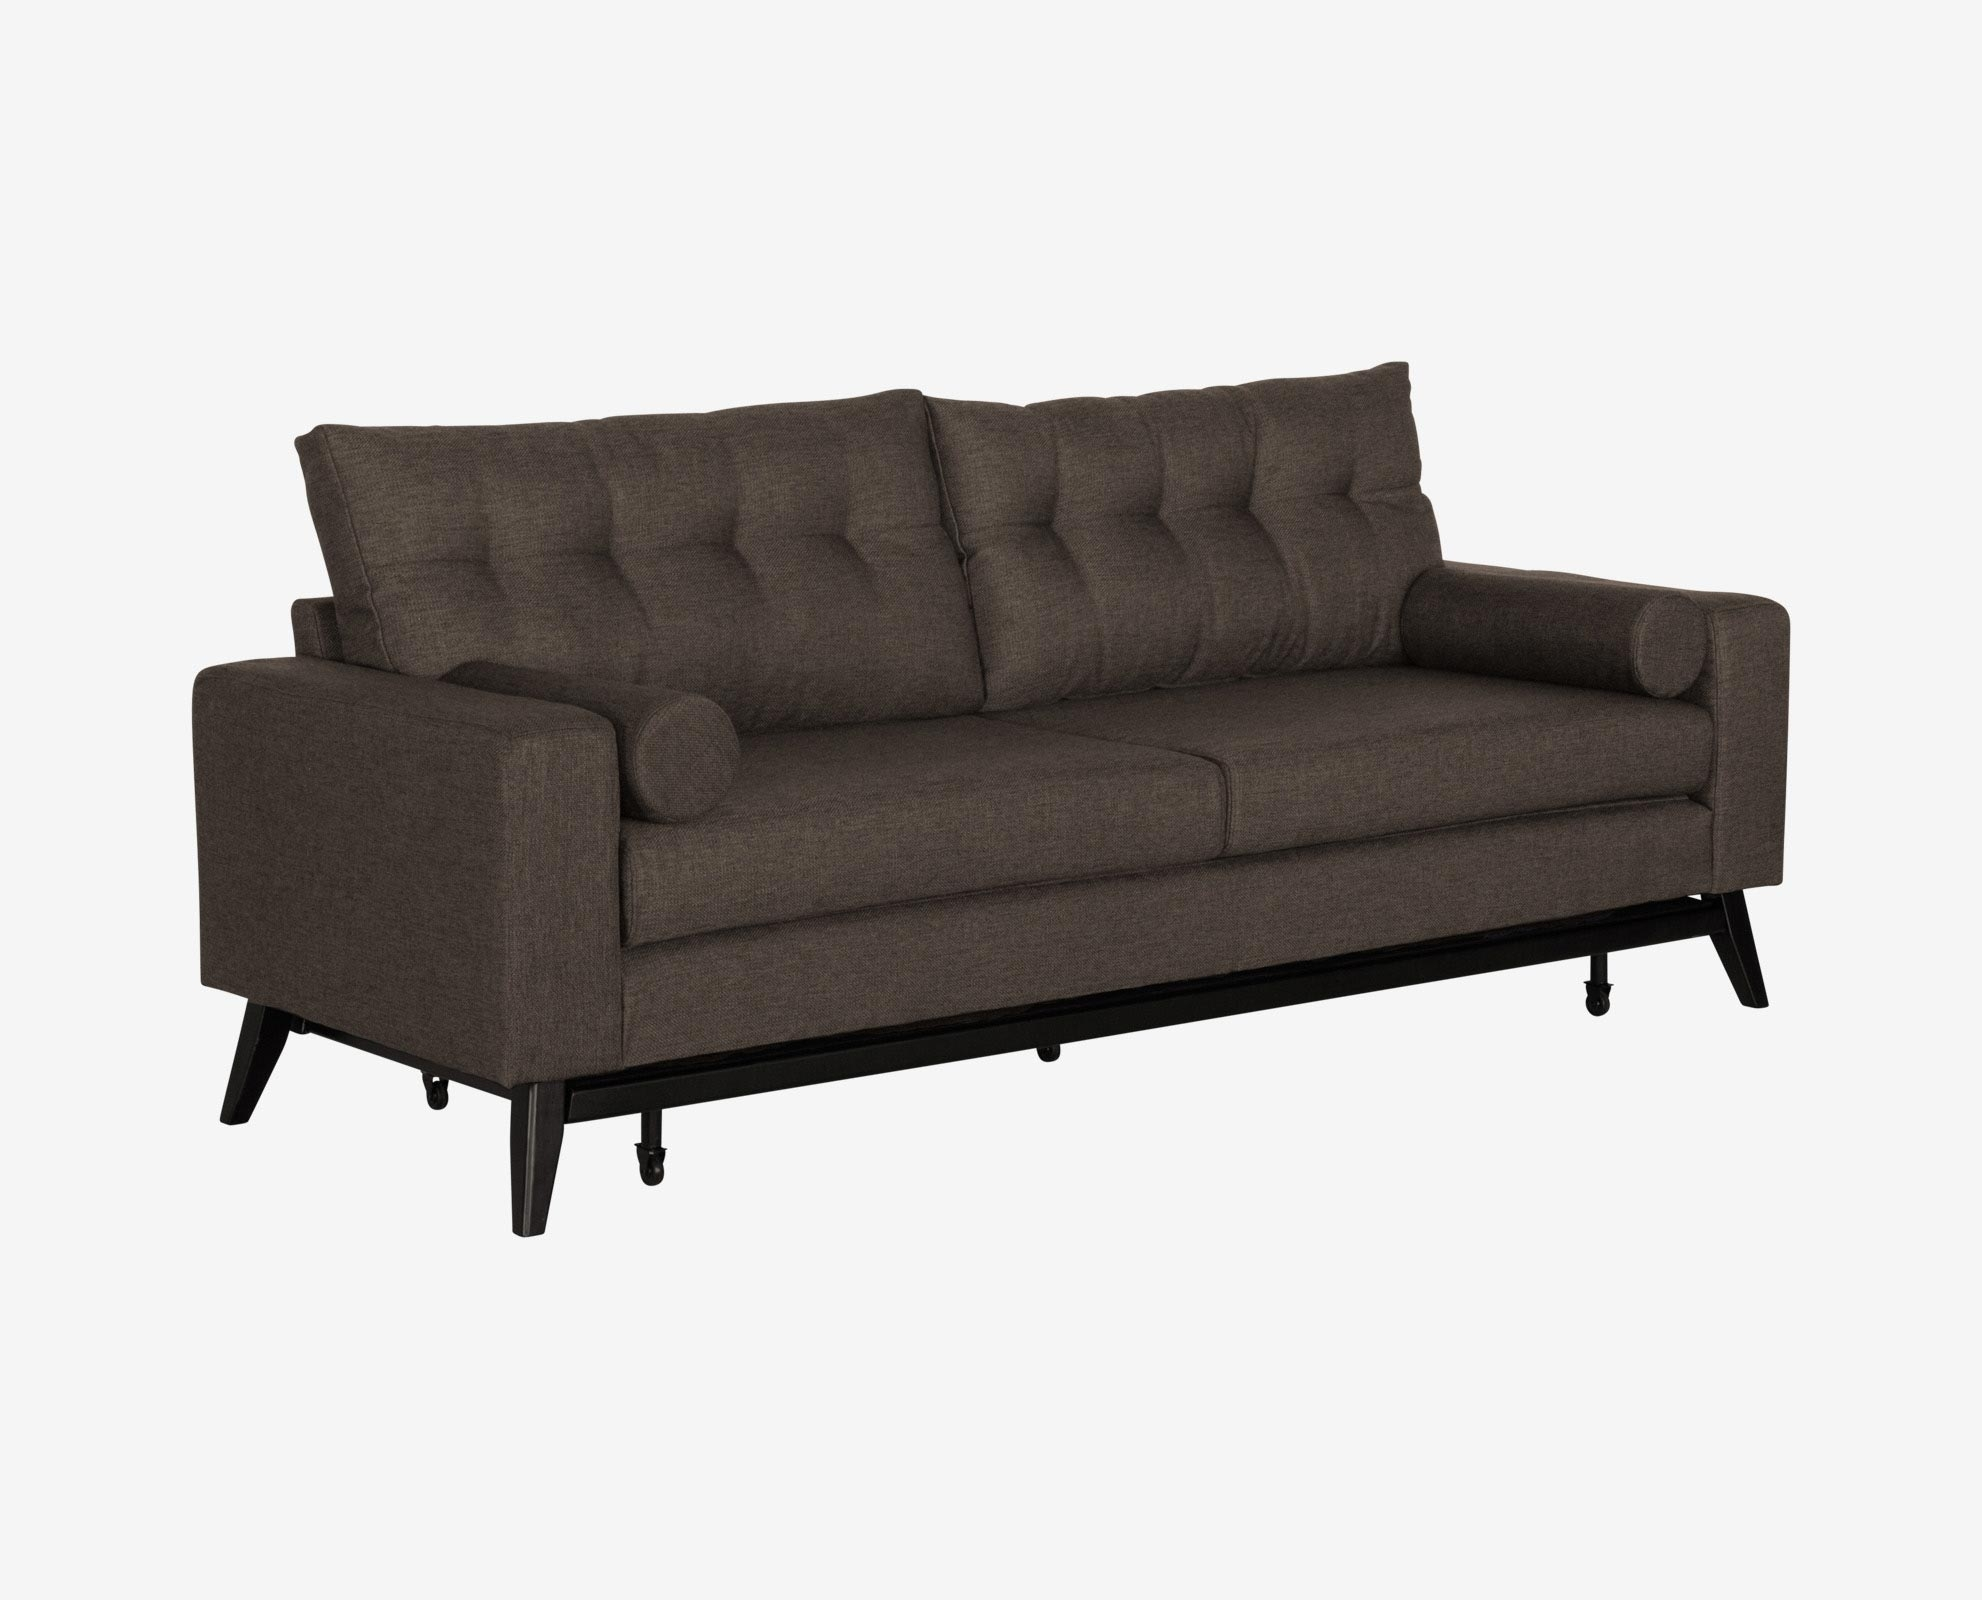 Living Room Sofa Dania The Kenora Sleeper Offers Clean Lines Angled inside Everett Wa Sectional Sofas (Image 8 of 10)